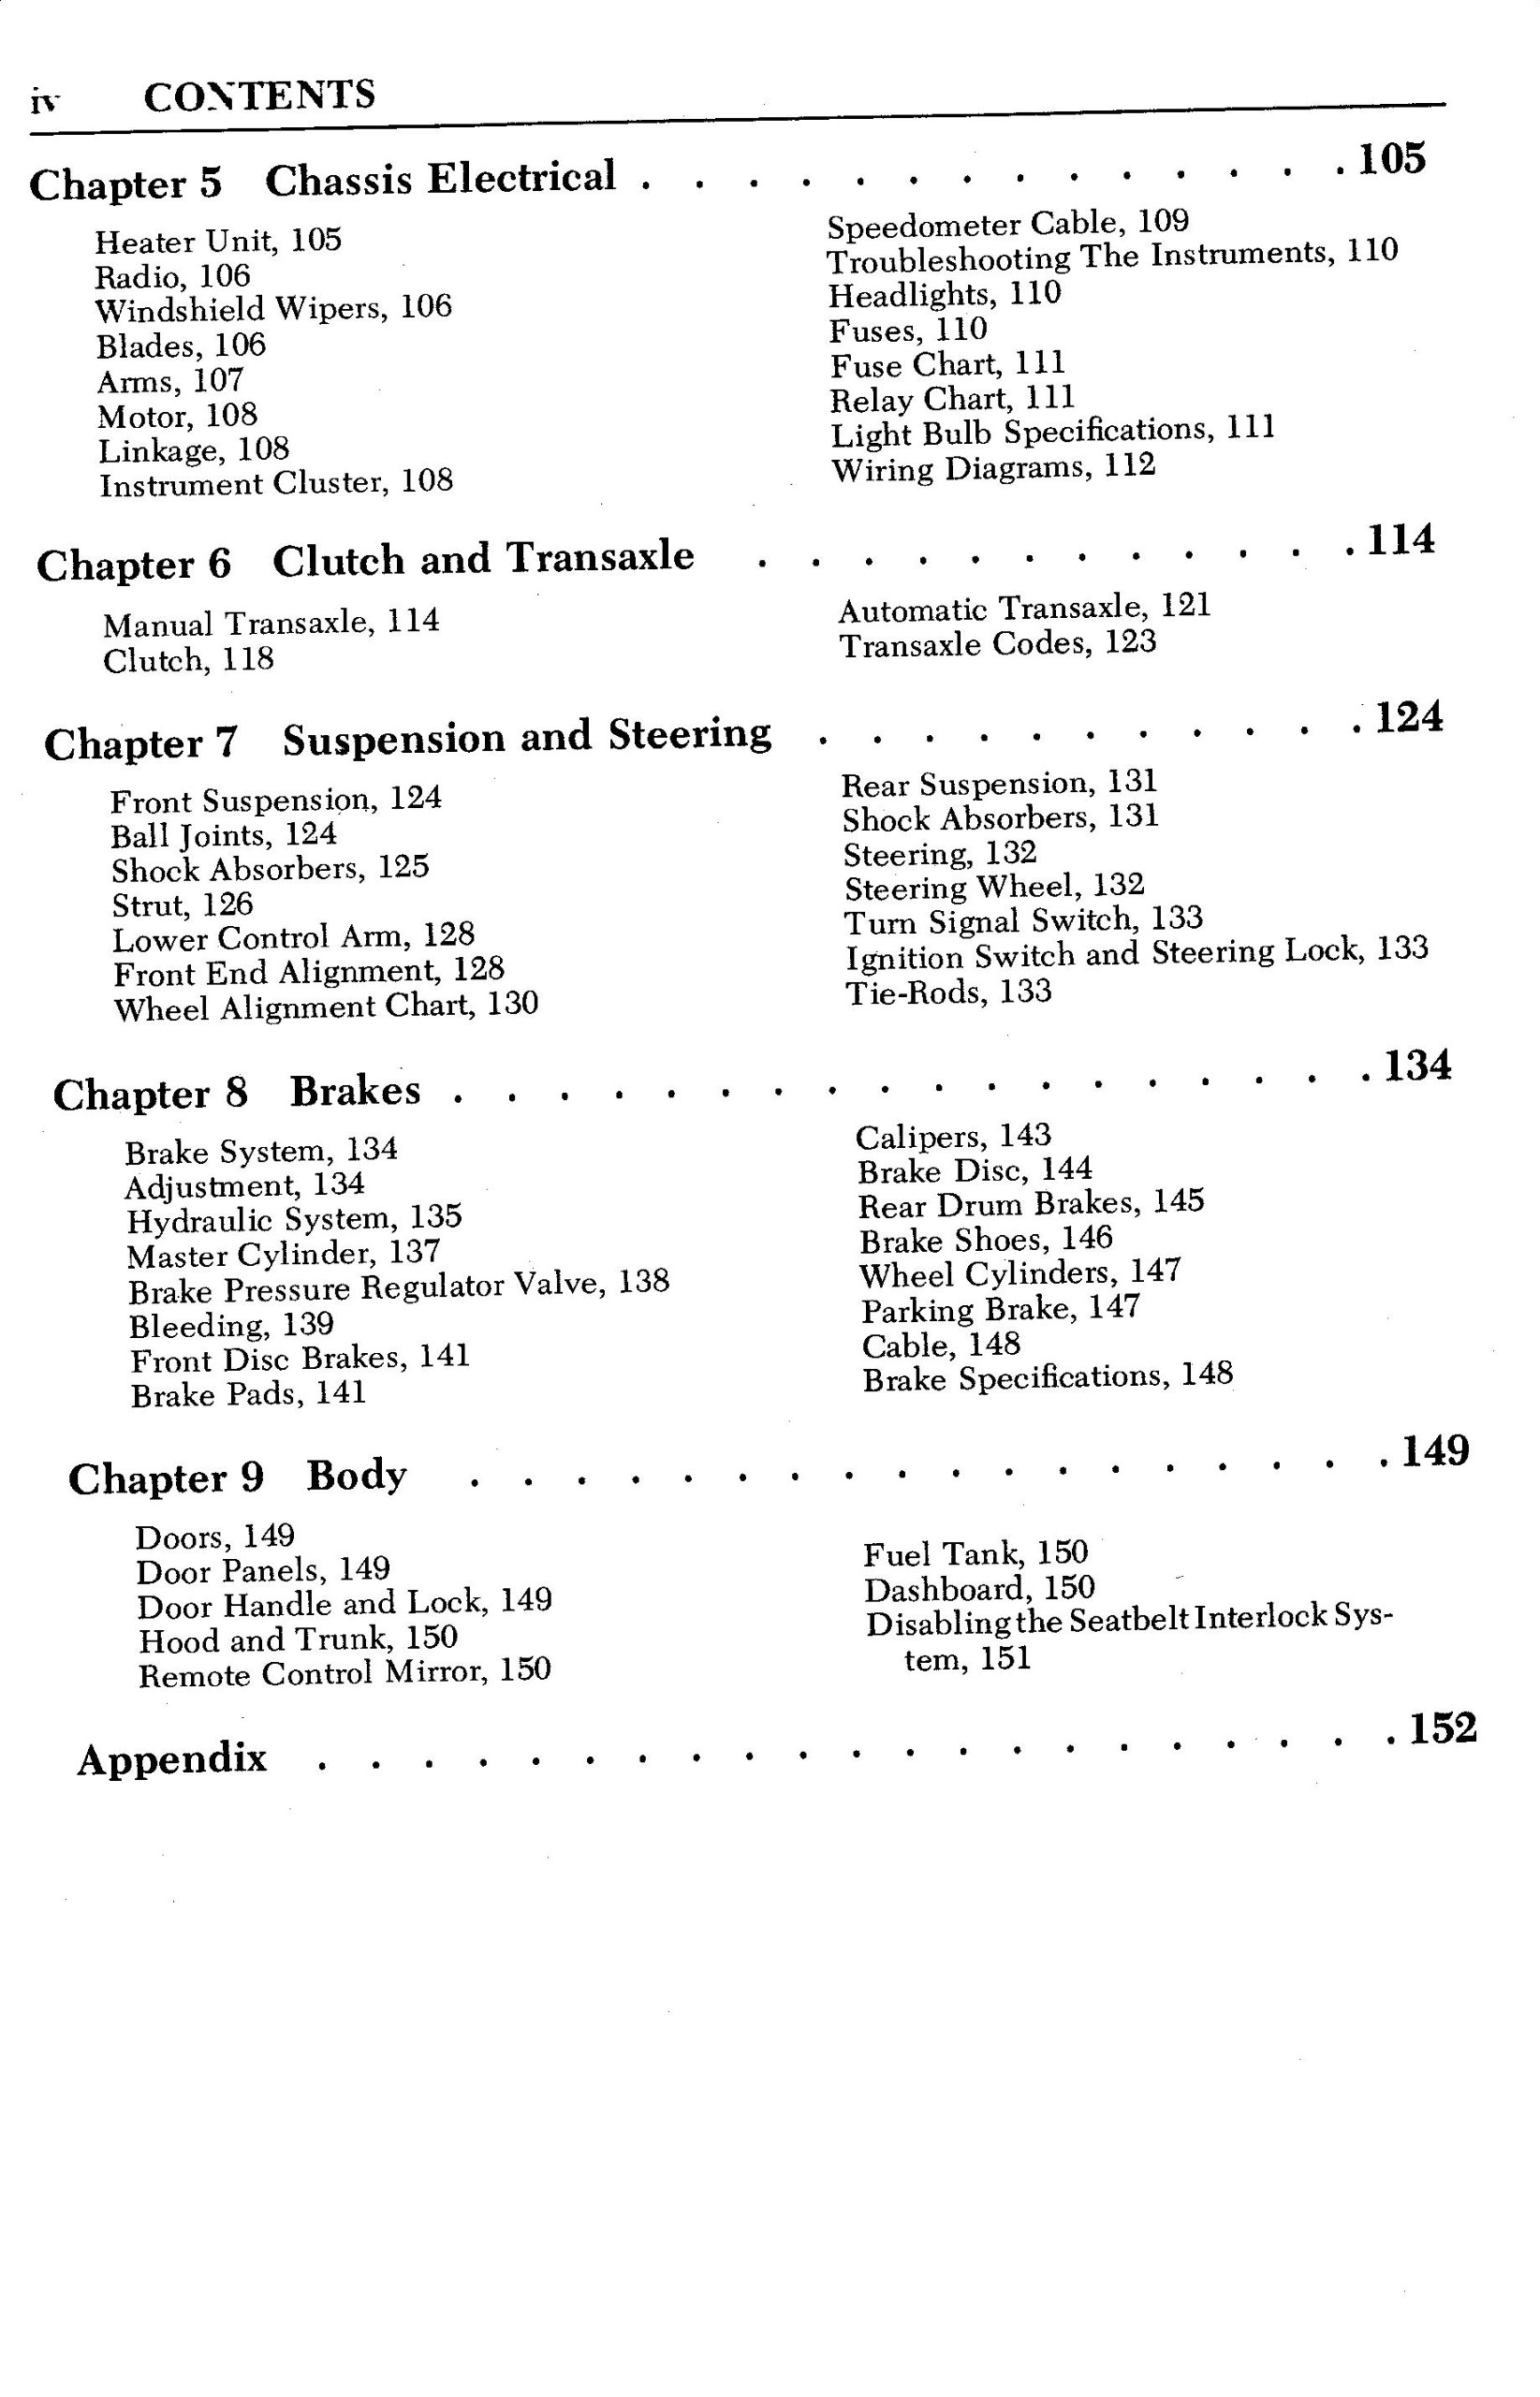 Chiltons Repair And Tune Up Guide Audi Fox 1973 1975 Chilton Relay 109 Wiring Diagram Book Company Automotive Editorial Dept 9780801963377 Books